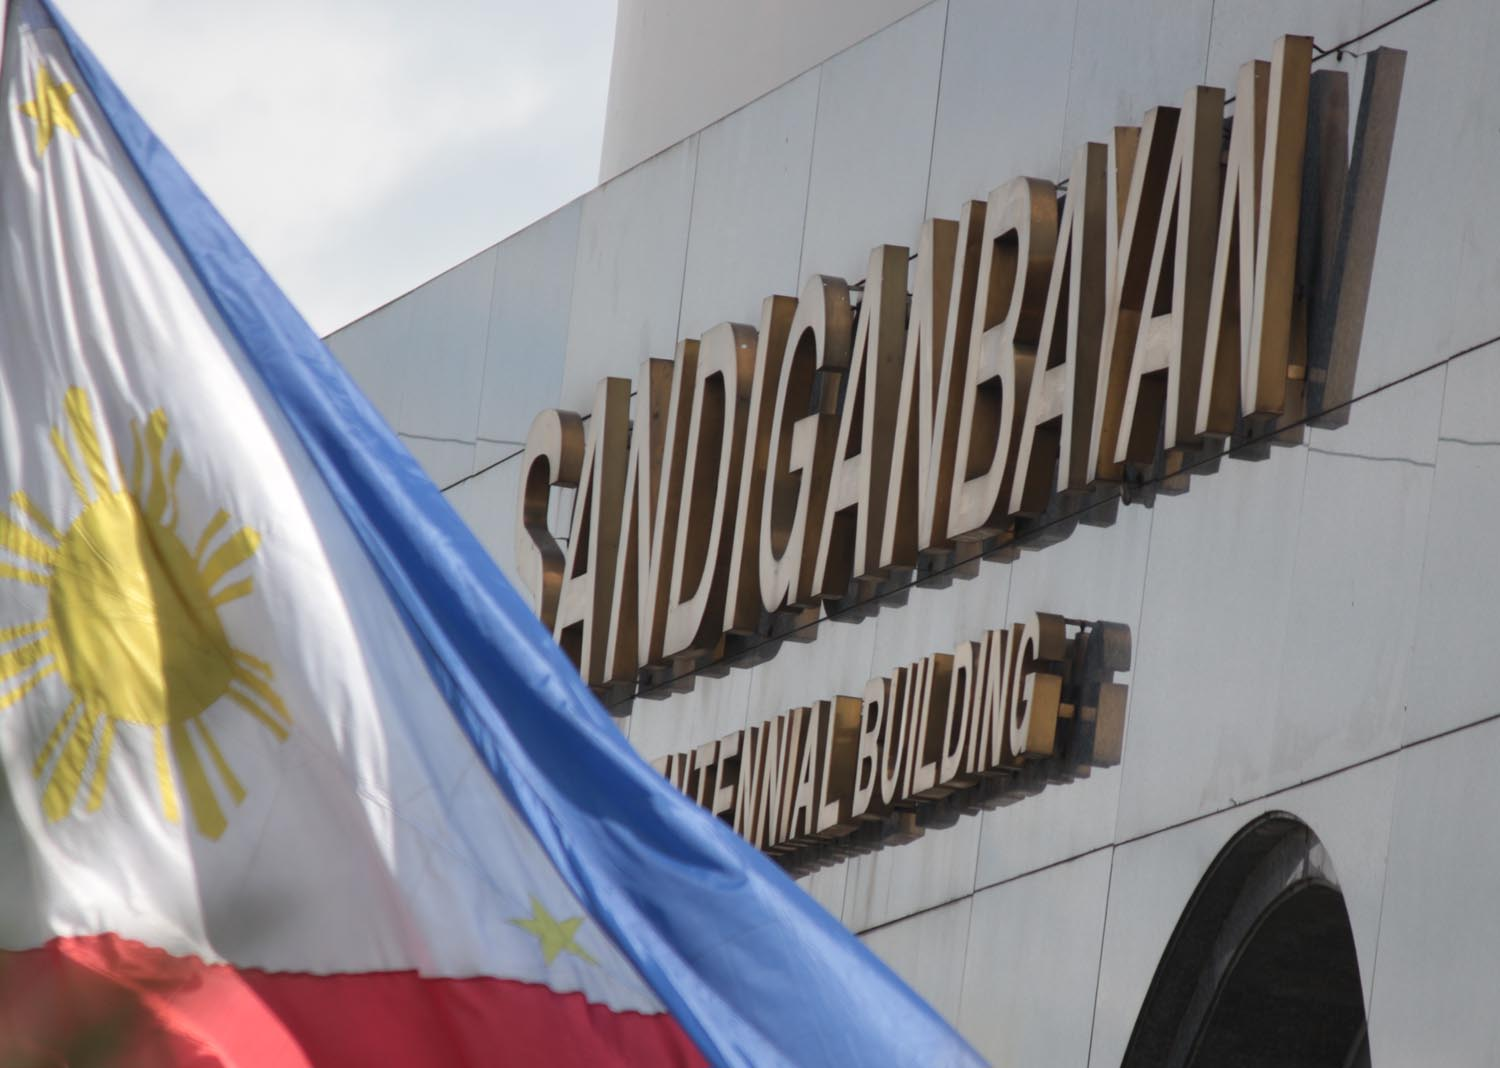 PCGG PROBE. The anti-graft court Sandiganbayan compels the PCGG to investigate reports that sequestered assets in Surigao del Sur are being sold piece by piece. Photo by Darren Langit/Rappler